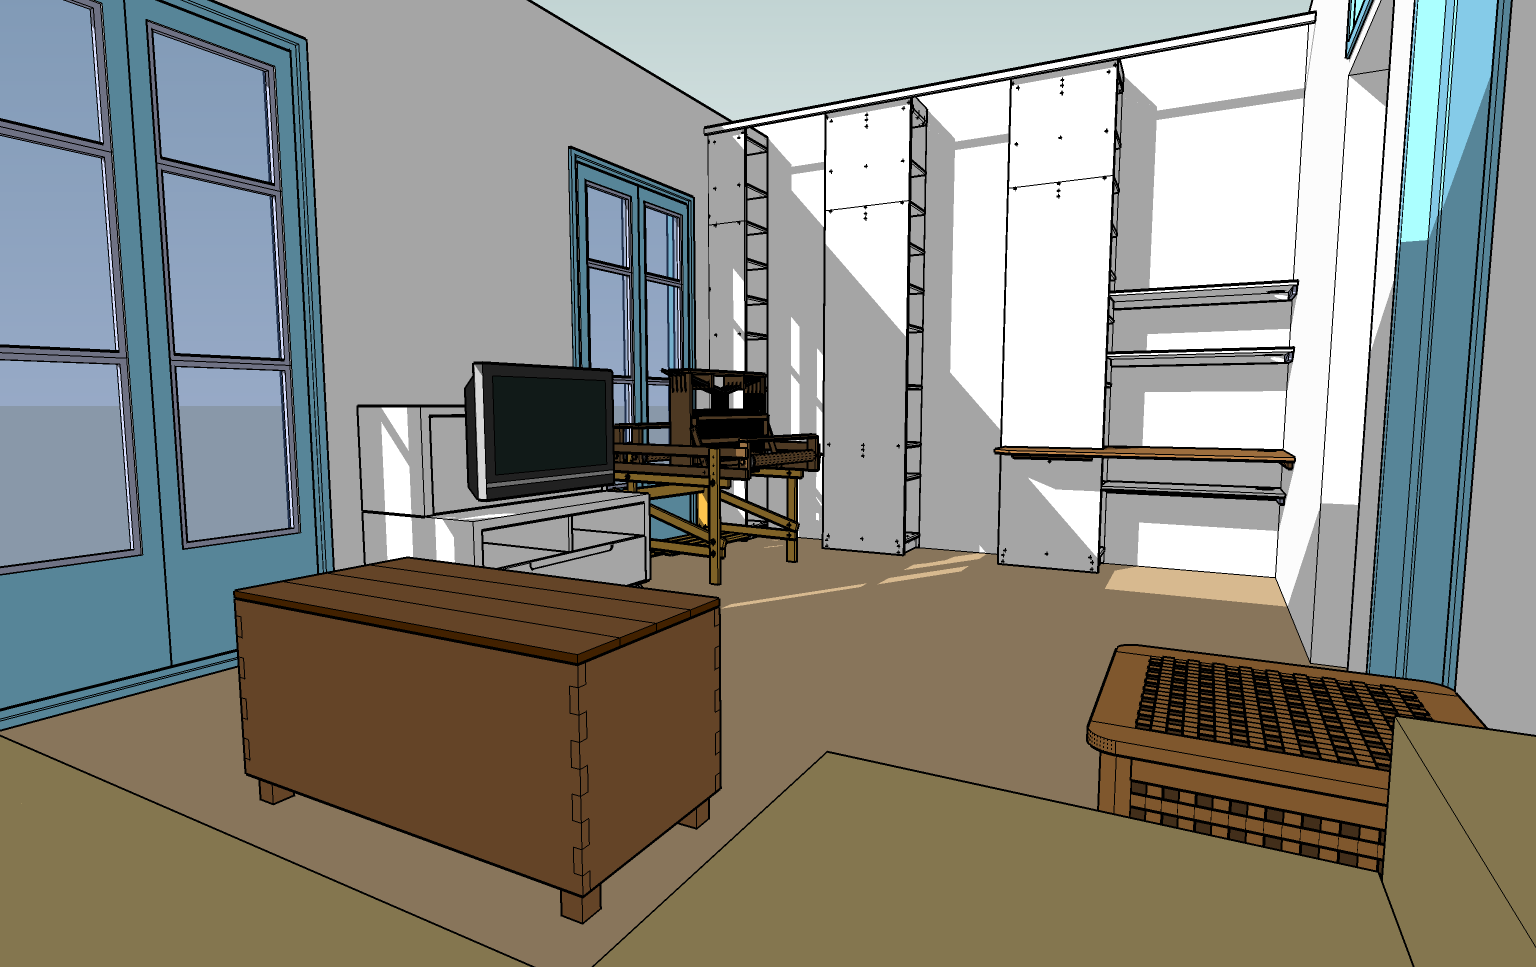 Using google sketchup to test room layouts catmacey 39 s stuff for Photo salon